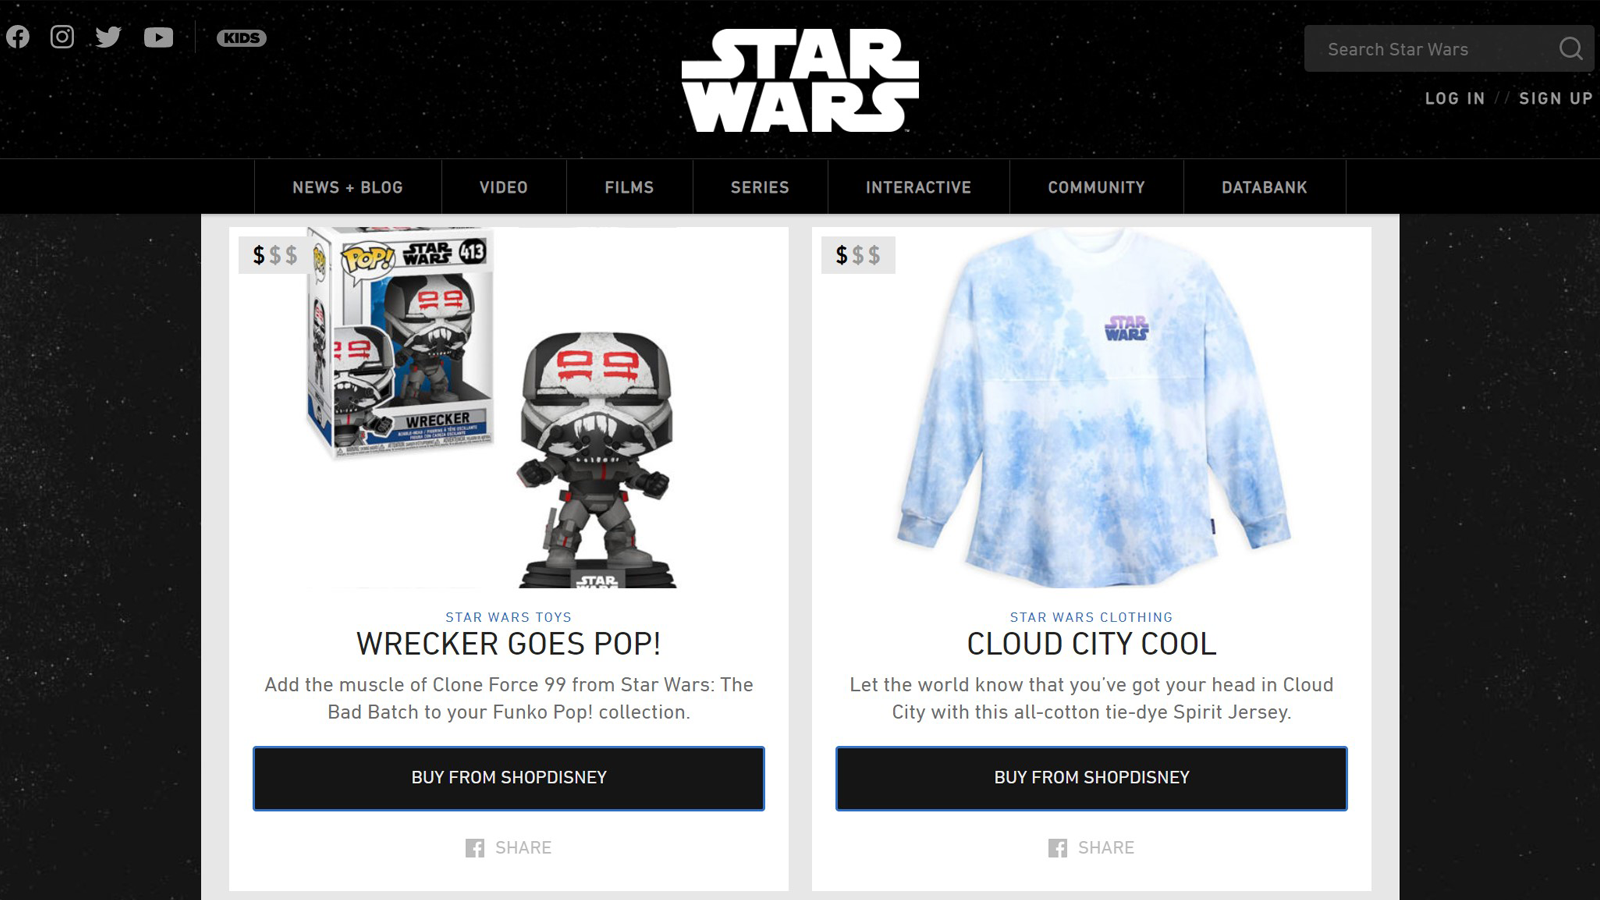 Home page of the star wars shop with Funko Pops and a long-sleeve shirt